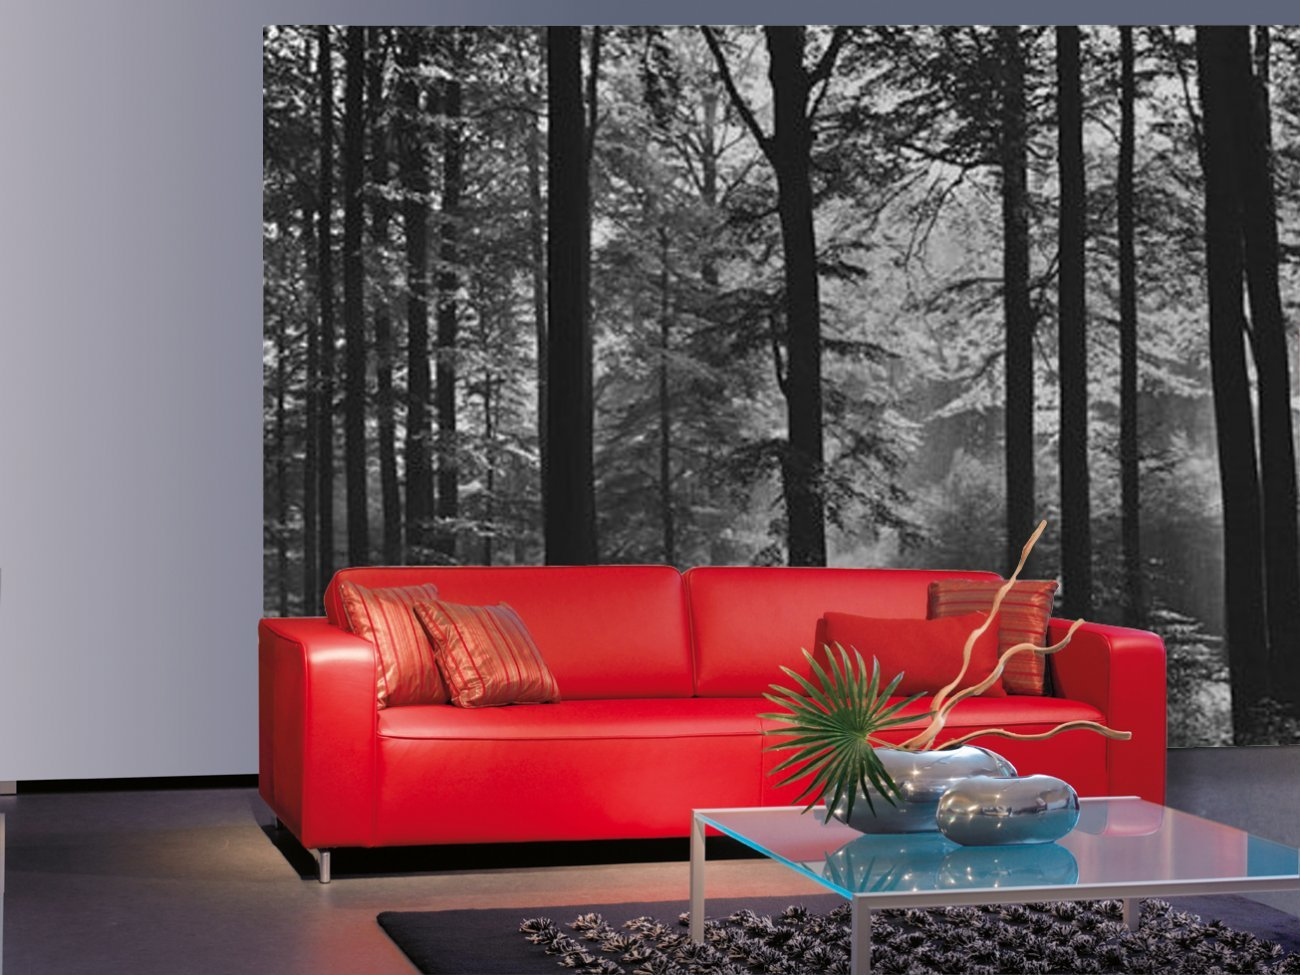 mystical woodland black and white photography nature 8 sheet mystical woodland black and white photography nature 8 sheet forest wall mural 366x254cm available for uk delivery only amazon co uk kitchen home